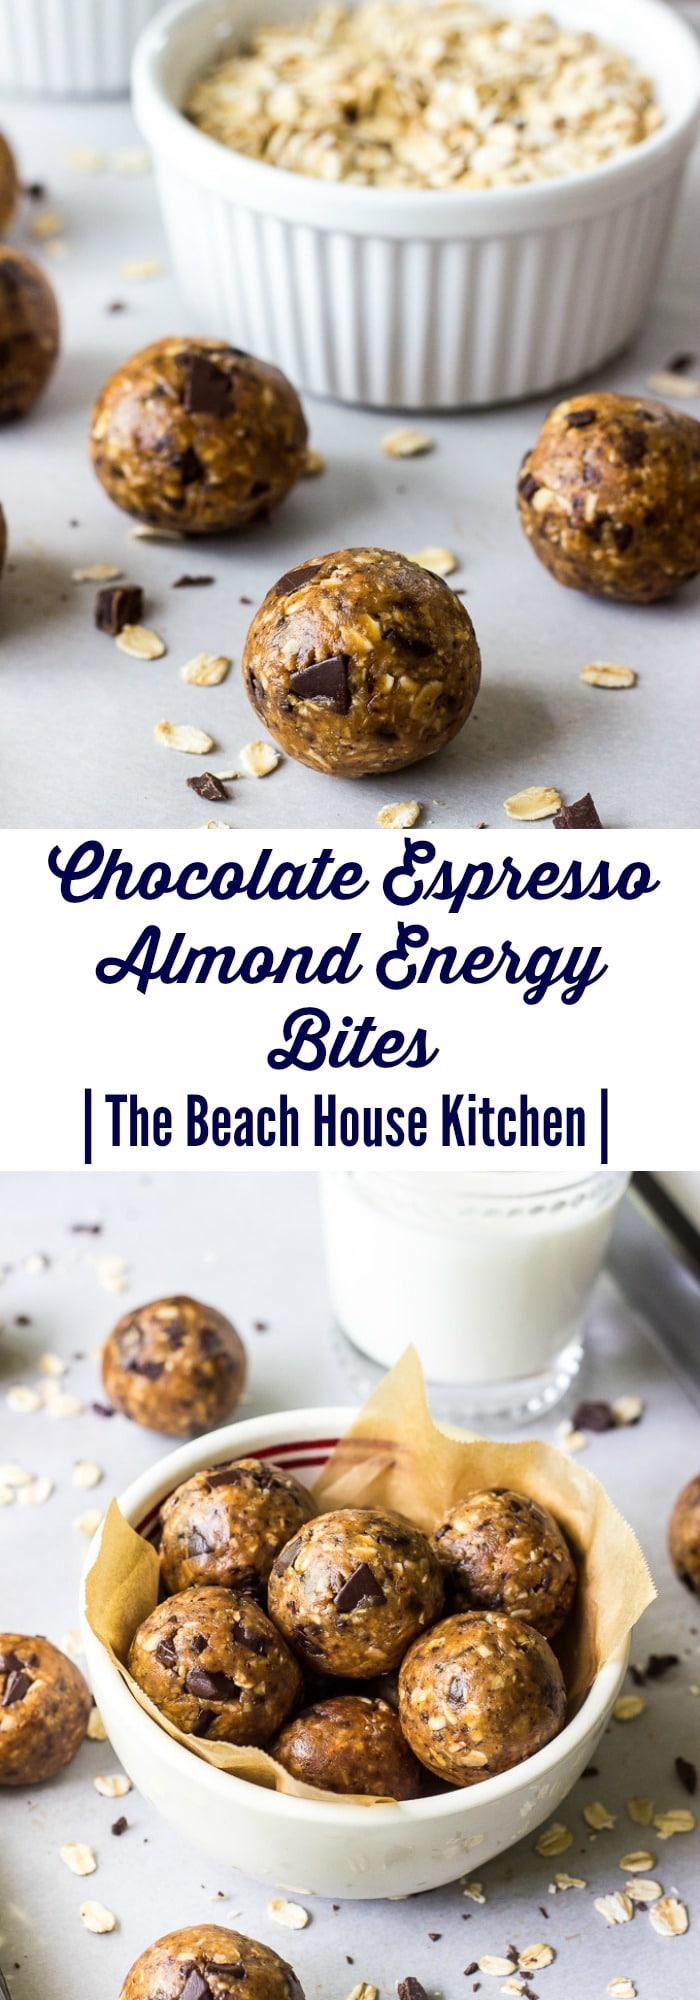 Chocolate Espresso Almond Energy Bites